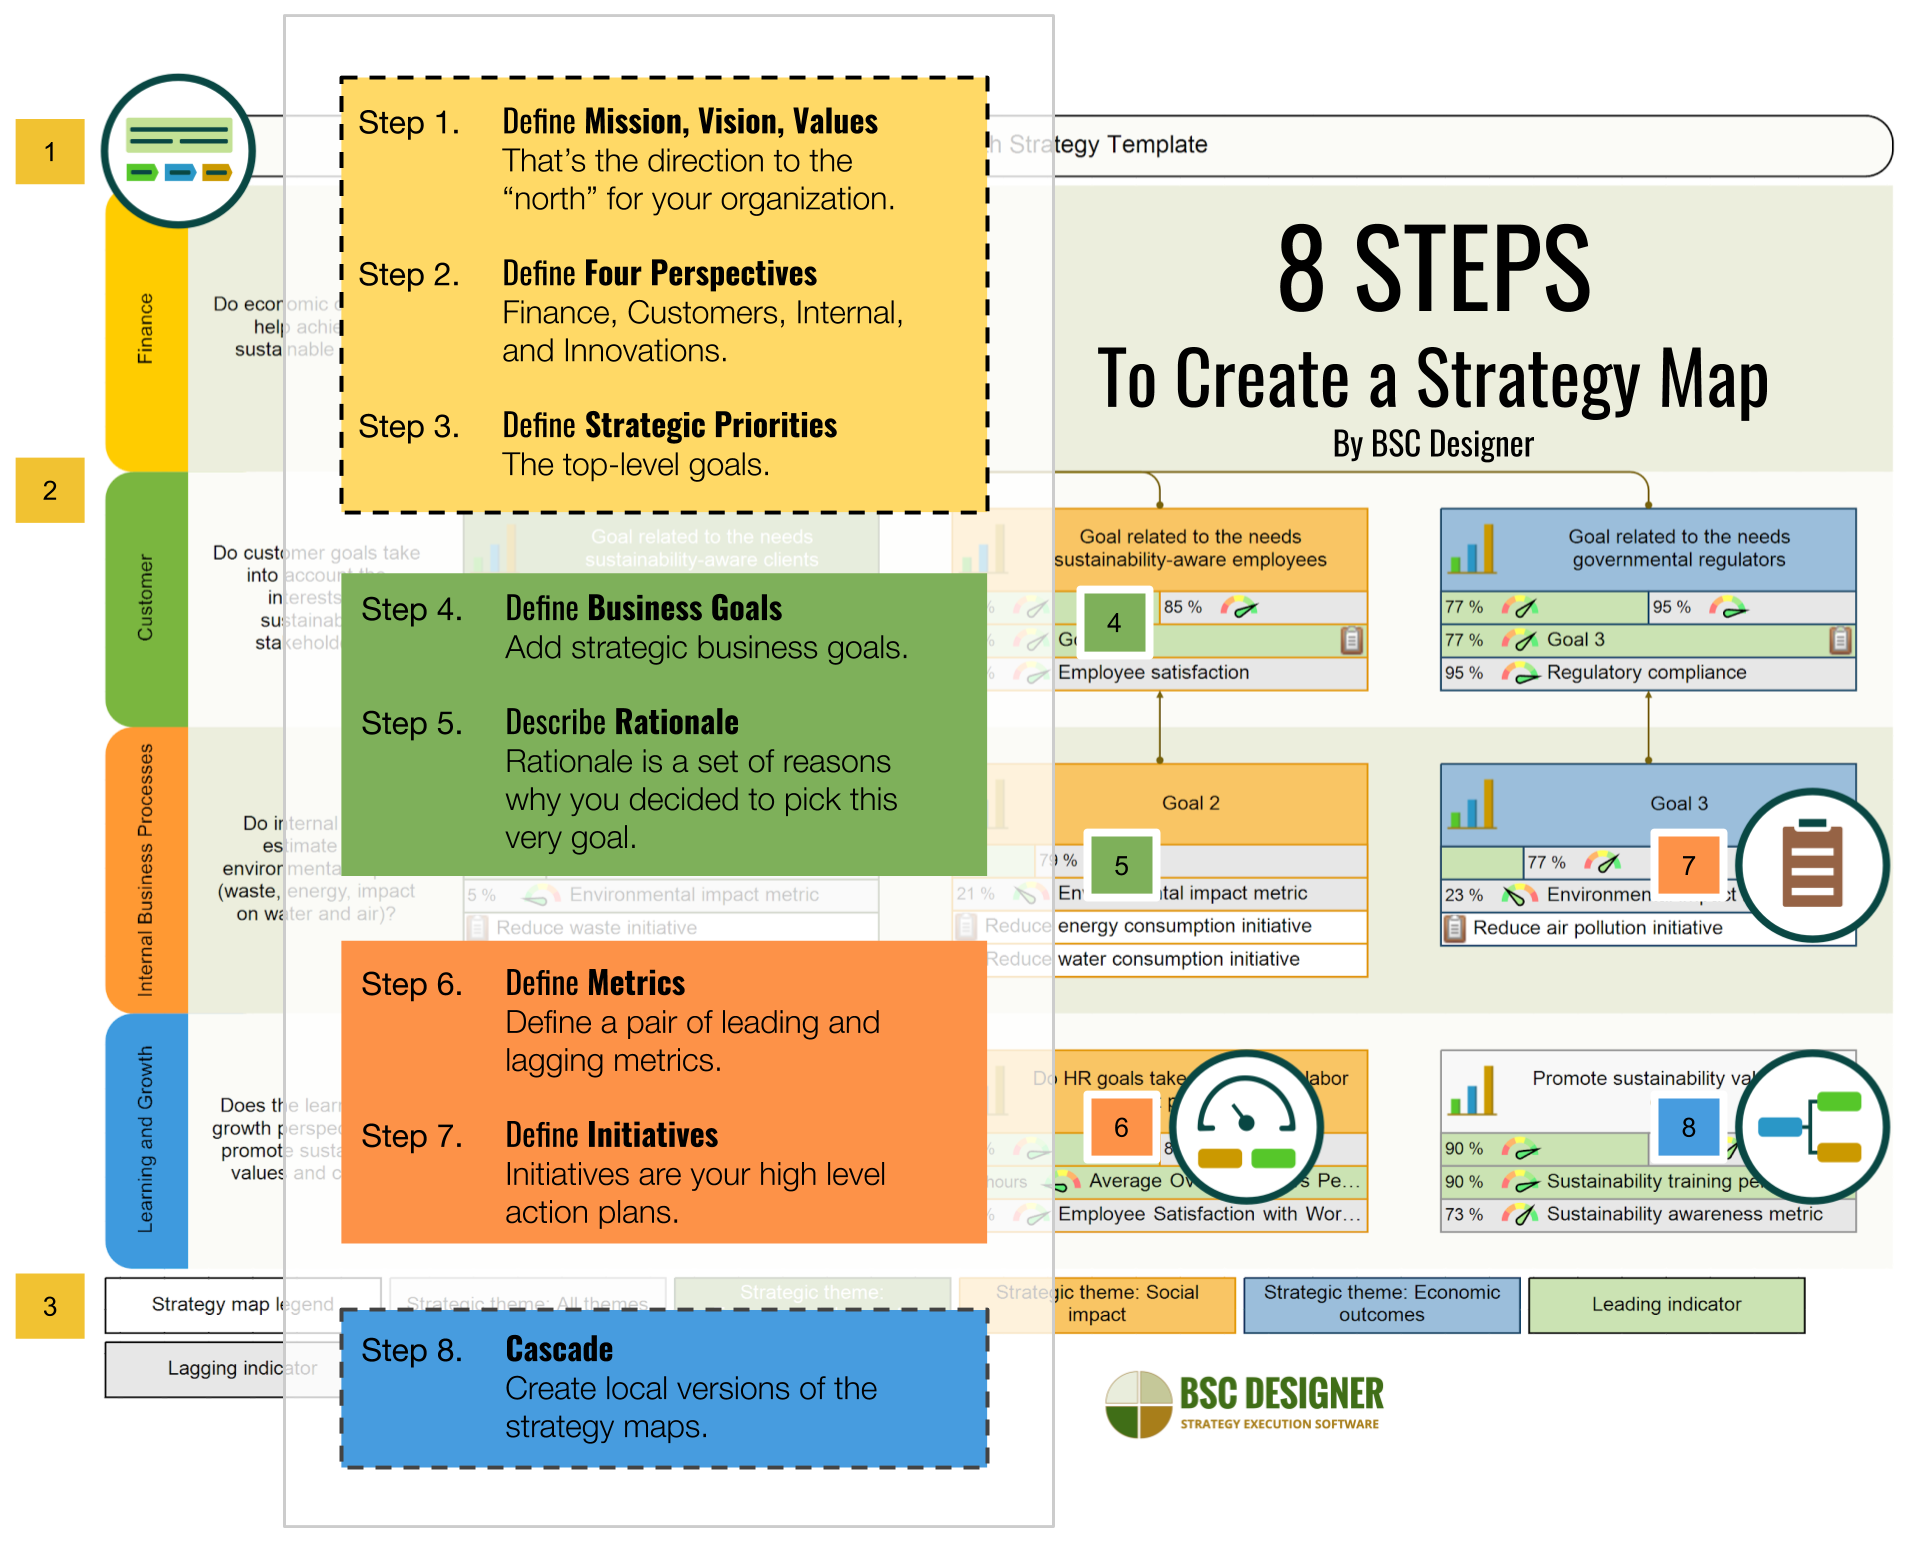 8 STEPS To Create a Strategy Map By BSC Designer